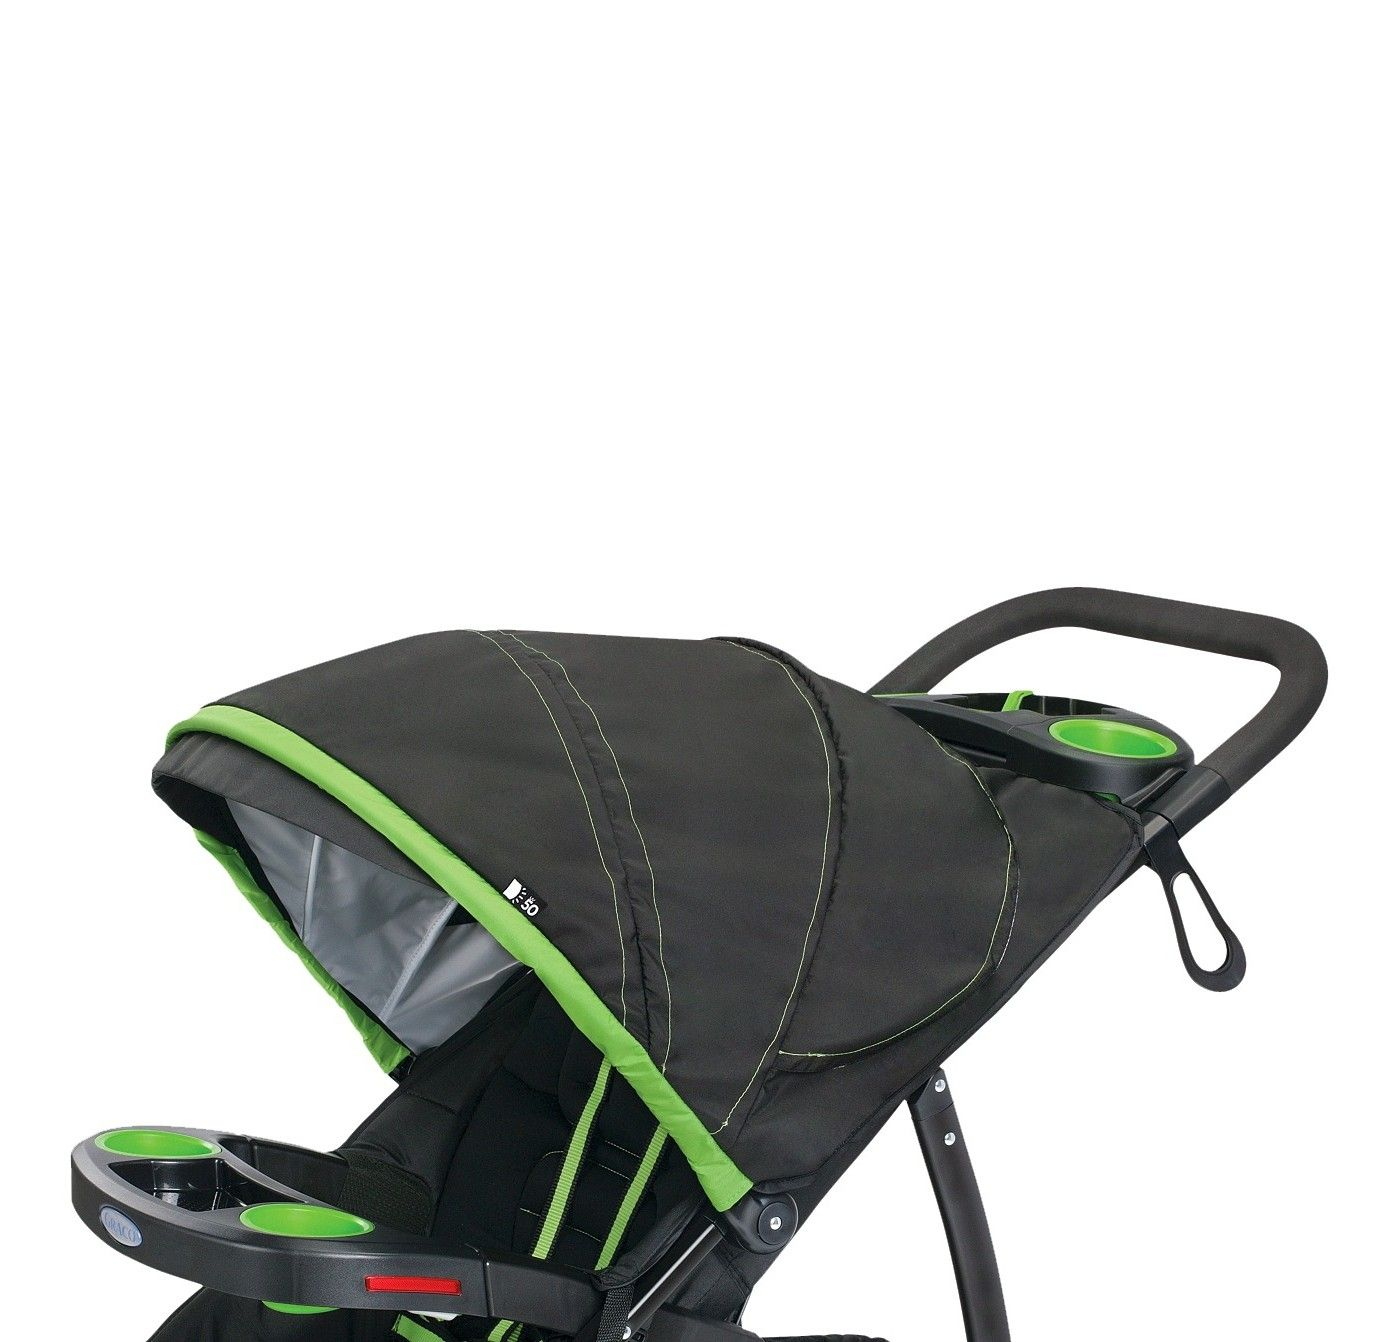 Affiliate AD, Travel system, Car seat stroller combo